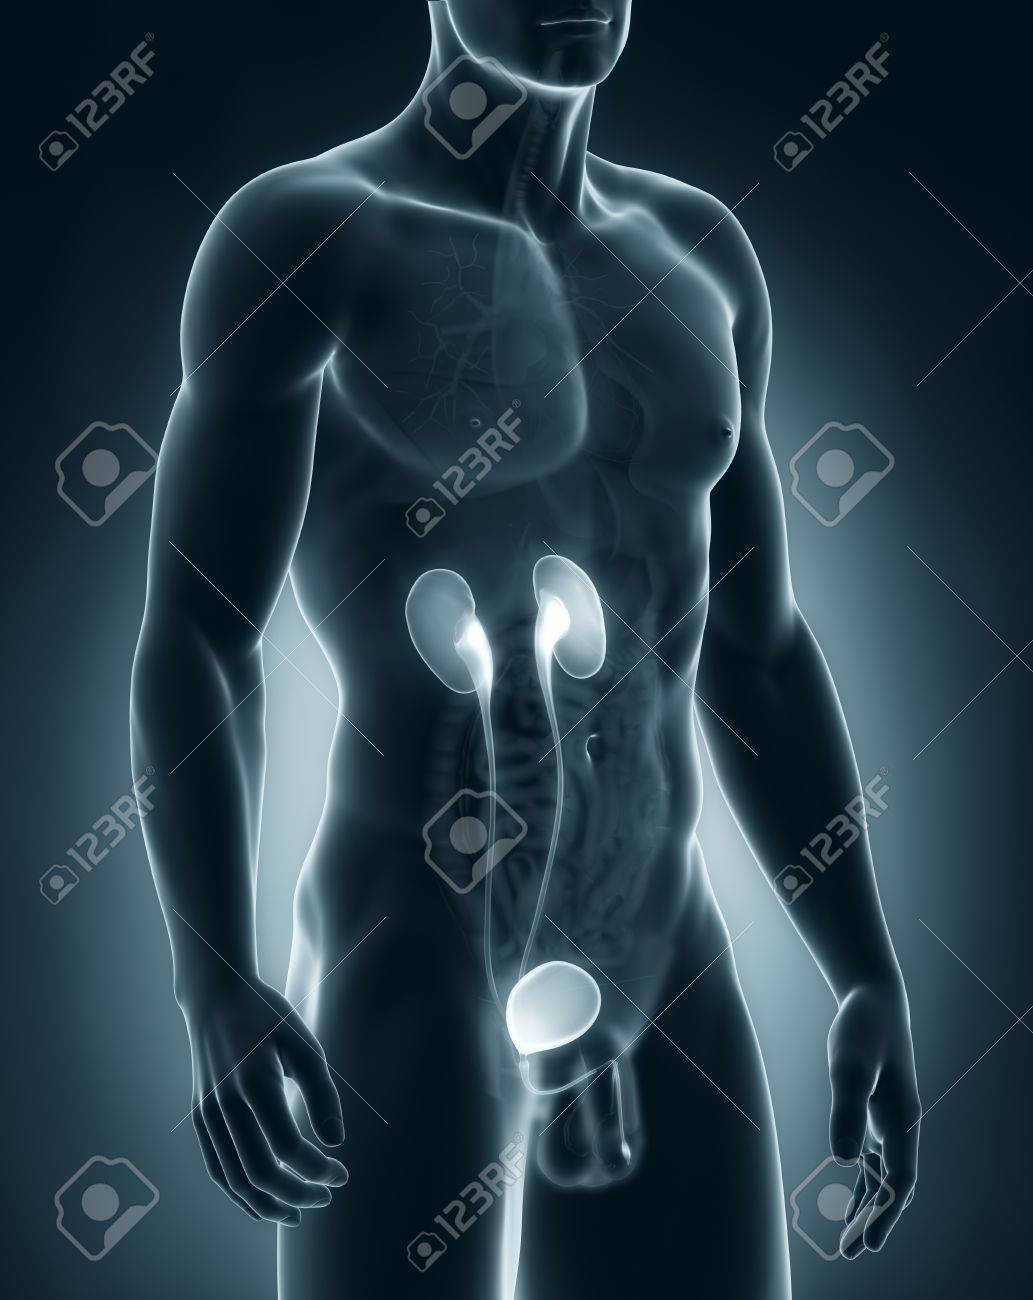 Male Urinary System Anatomy Stock Photo, Picture And Royalty Free ...